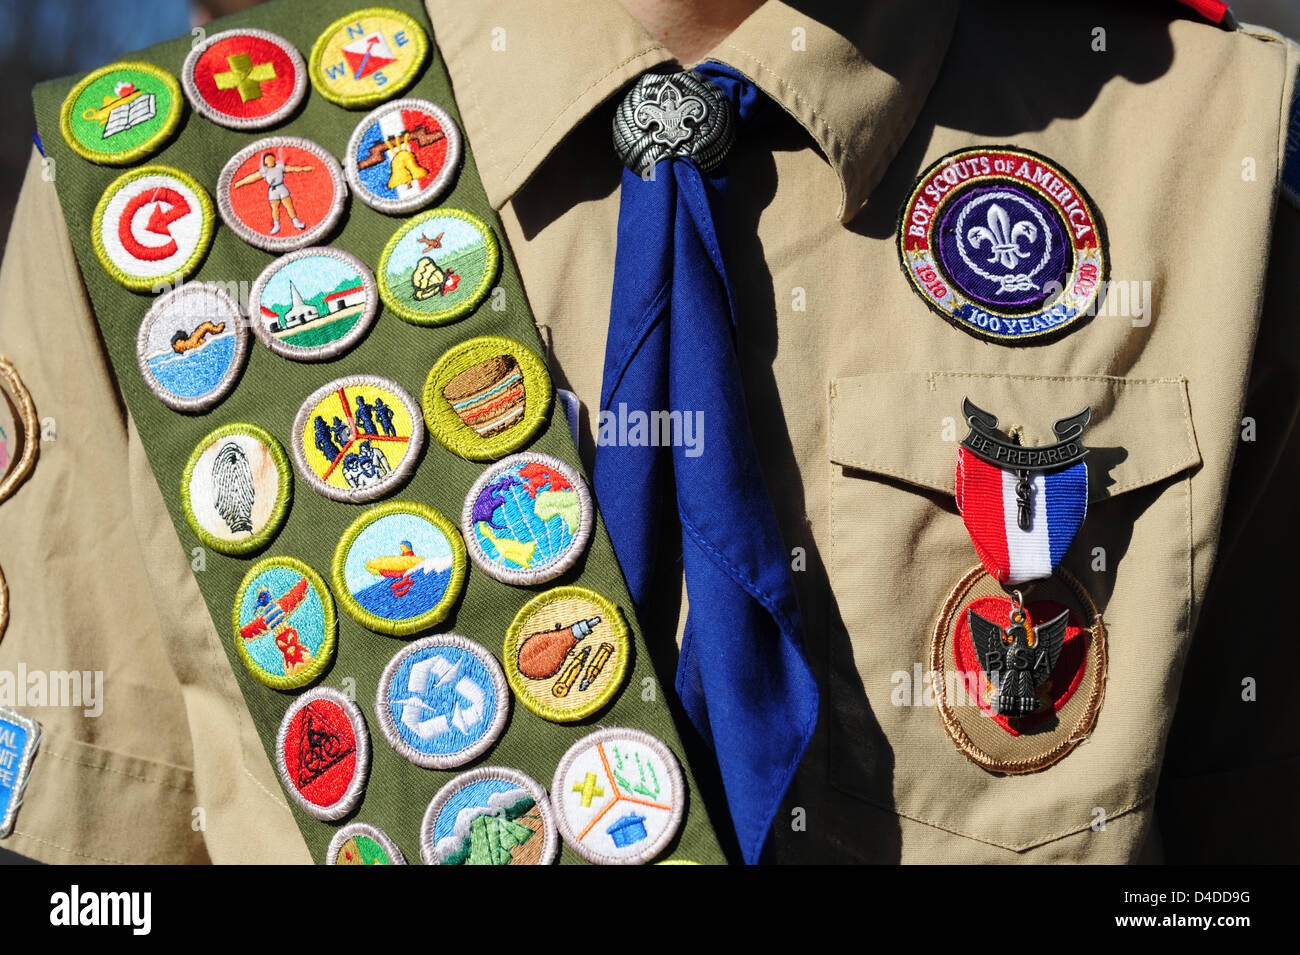 Eagle Scout Logo Eagle Scout Stock Photos Amp Eagle Scout Stock Images Alamy